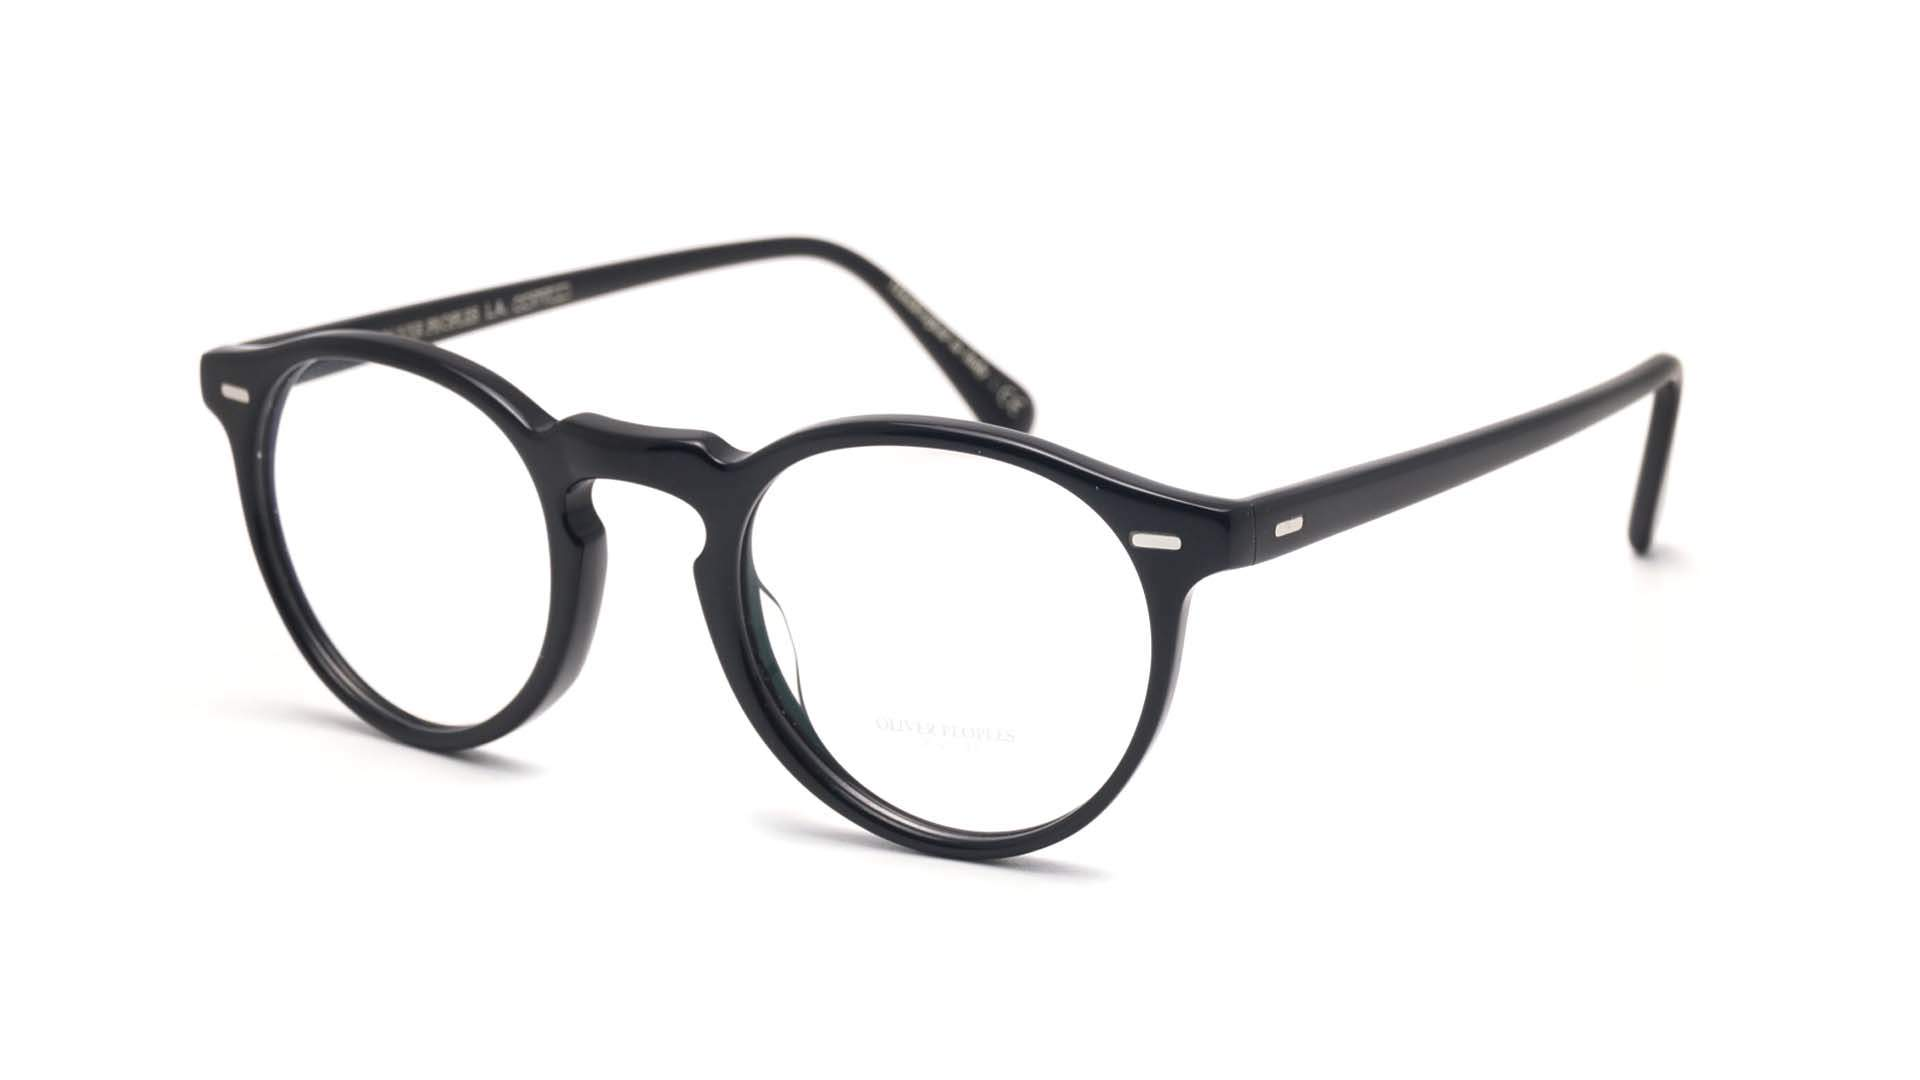 Oliver peoples Gregory Peck Noir OV5186 1005 47 23 Small